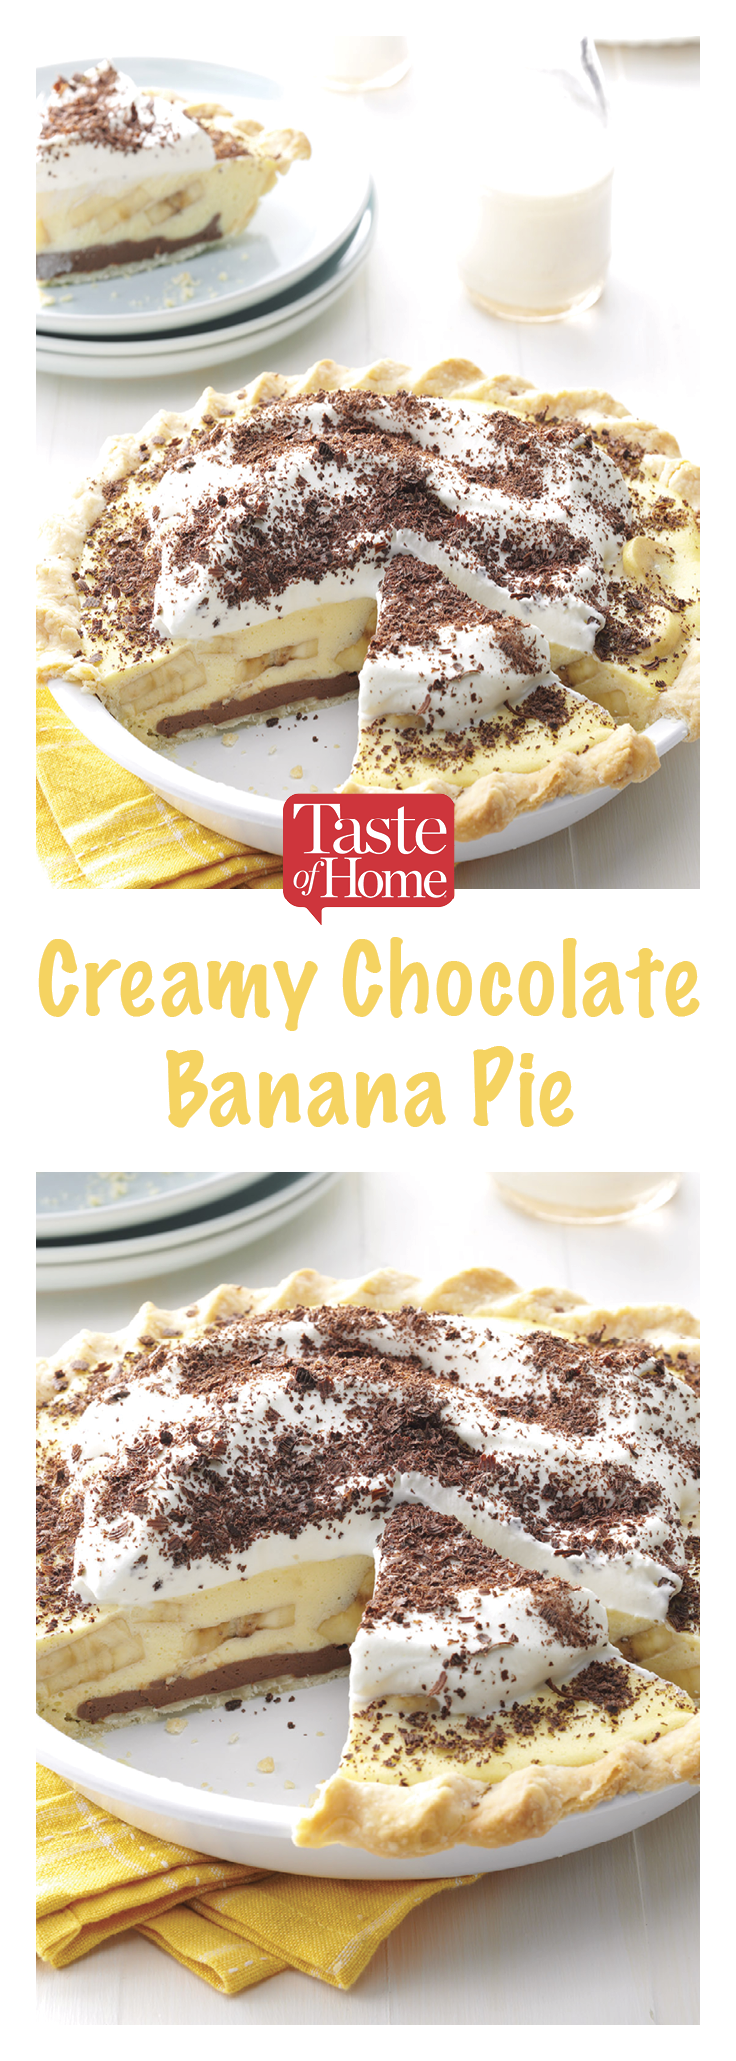 Creamy Chocolate-Banana Pie #bananapie